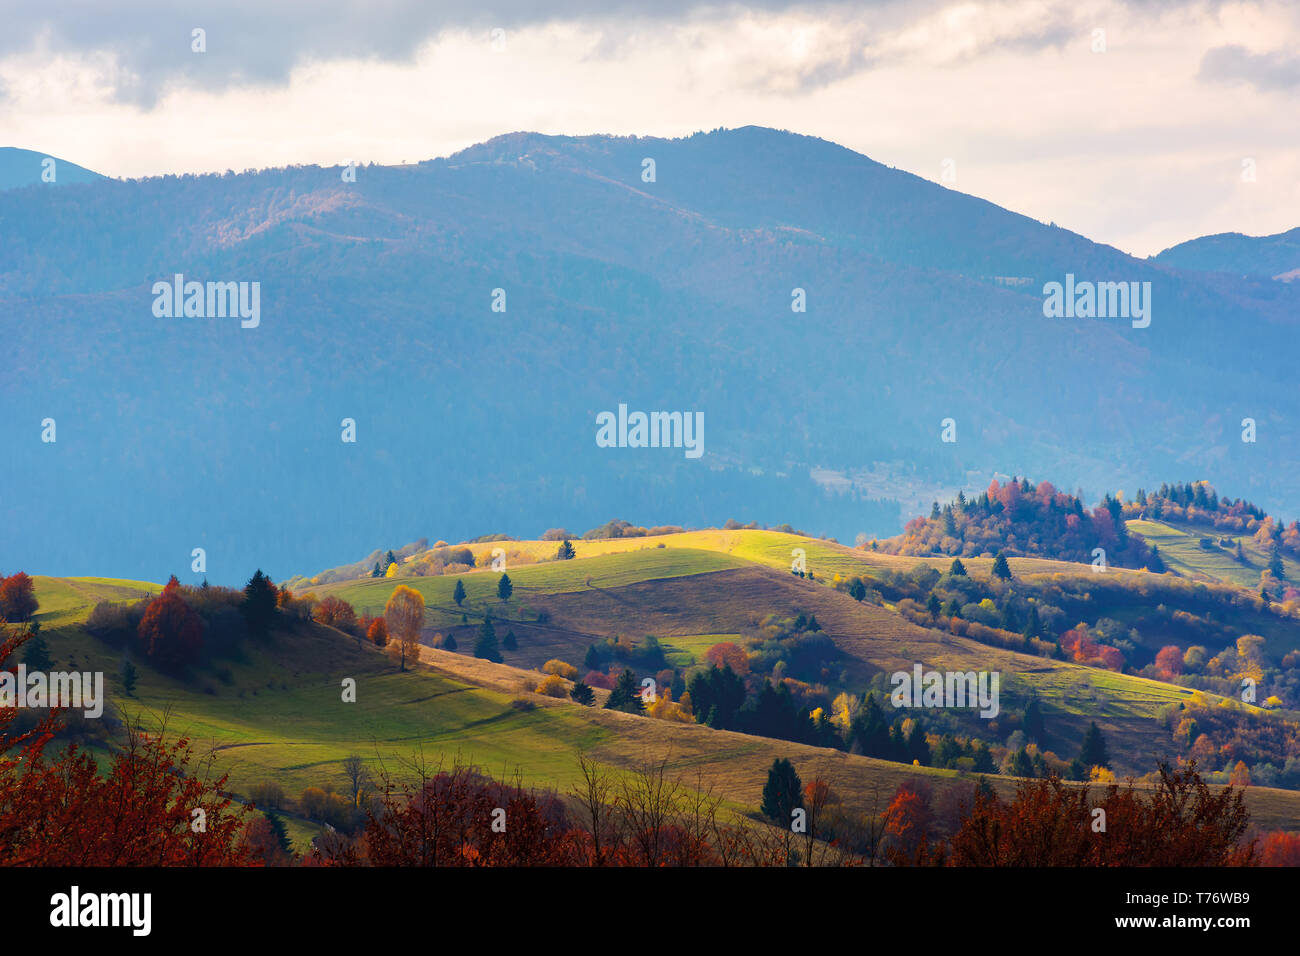 mountain rural area in late autumn season. agricultural field on a hill near the forest with red foliage. beautiful and vivid countryside landscape. - Stock Image